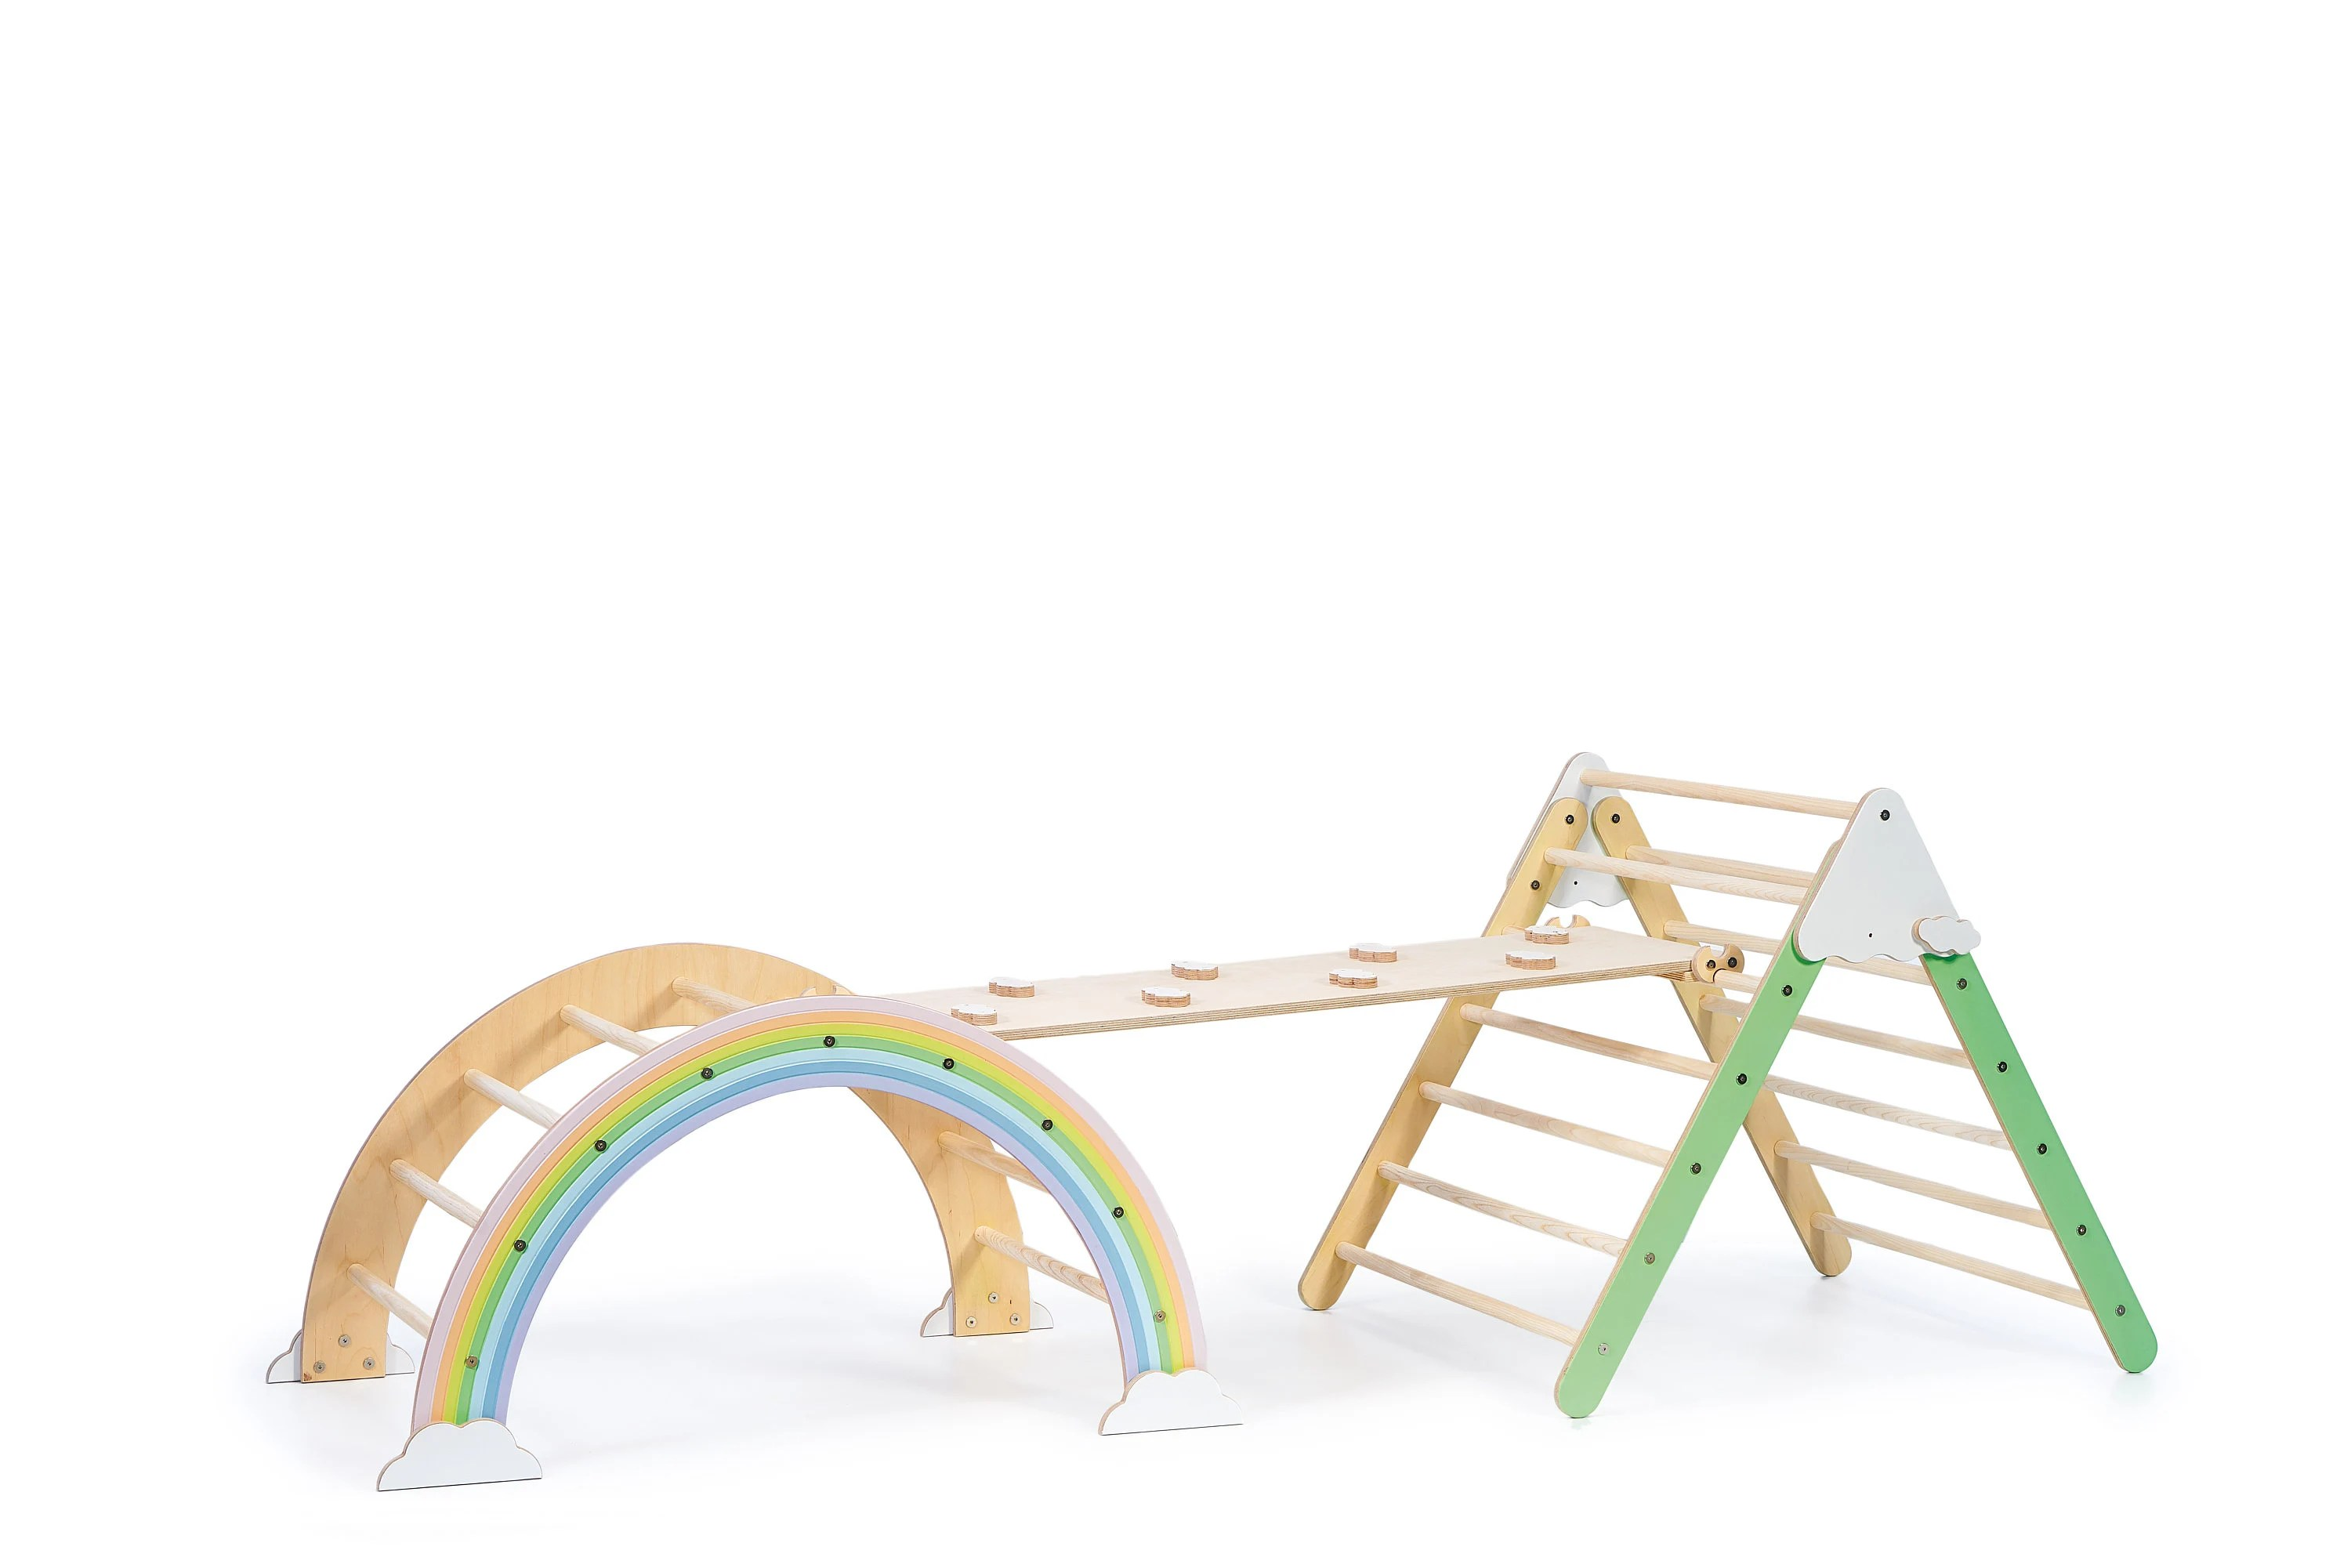 Foldable Pikler Triangle Climbing Arch with Ramp Climbing image 8